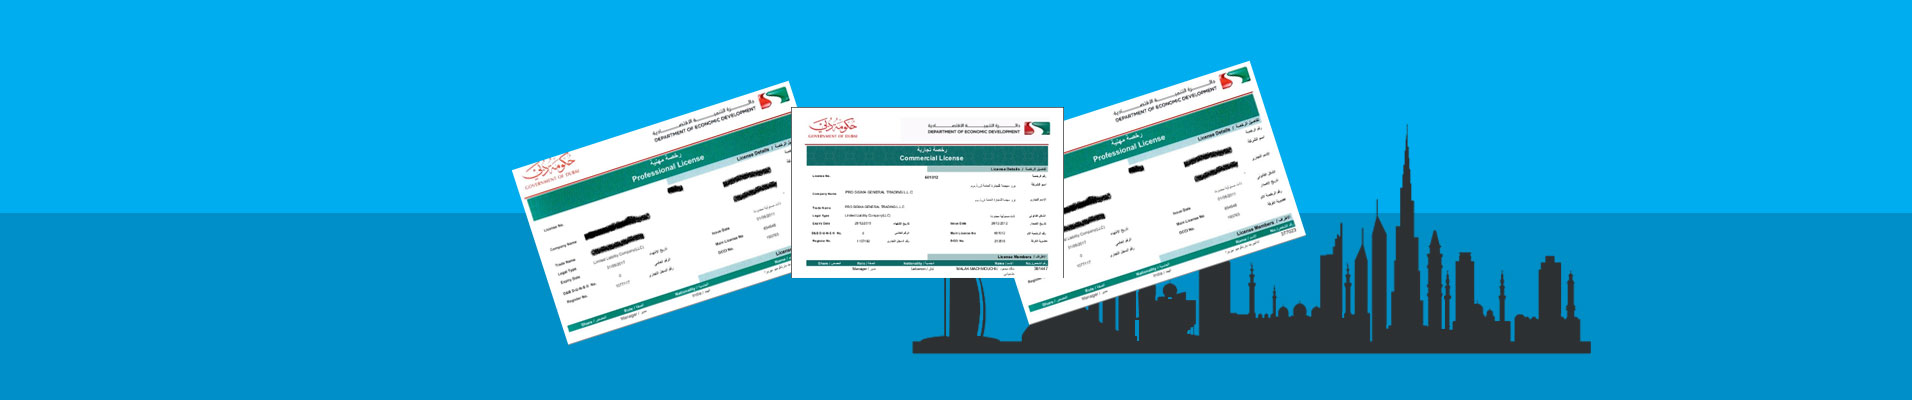 Trade License Dubai | Commercial and Professional License in